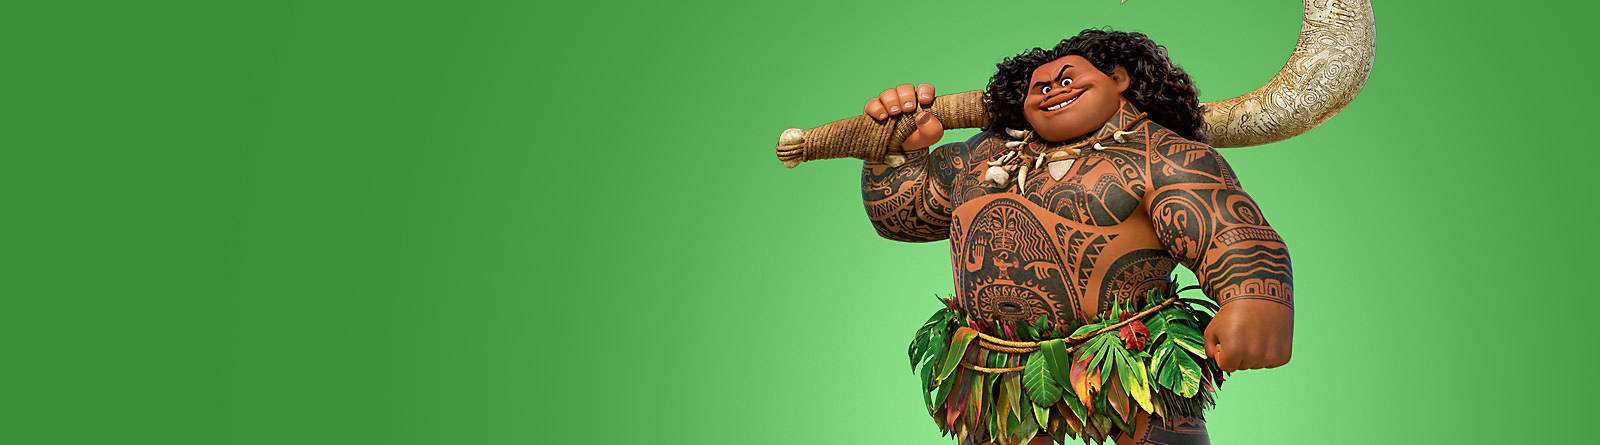 Maui It's Maui - breathe it in!  Check out our Maui from Moana range of toys, clothing, collectibles and more